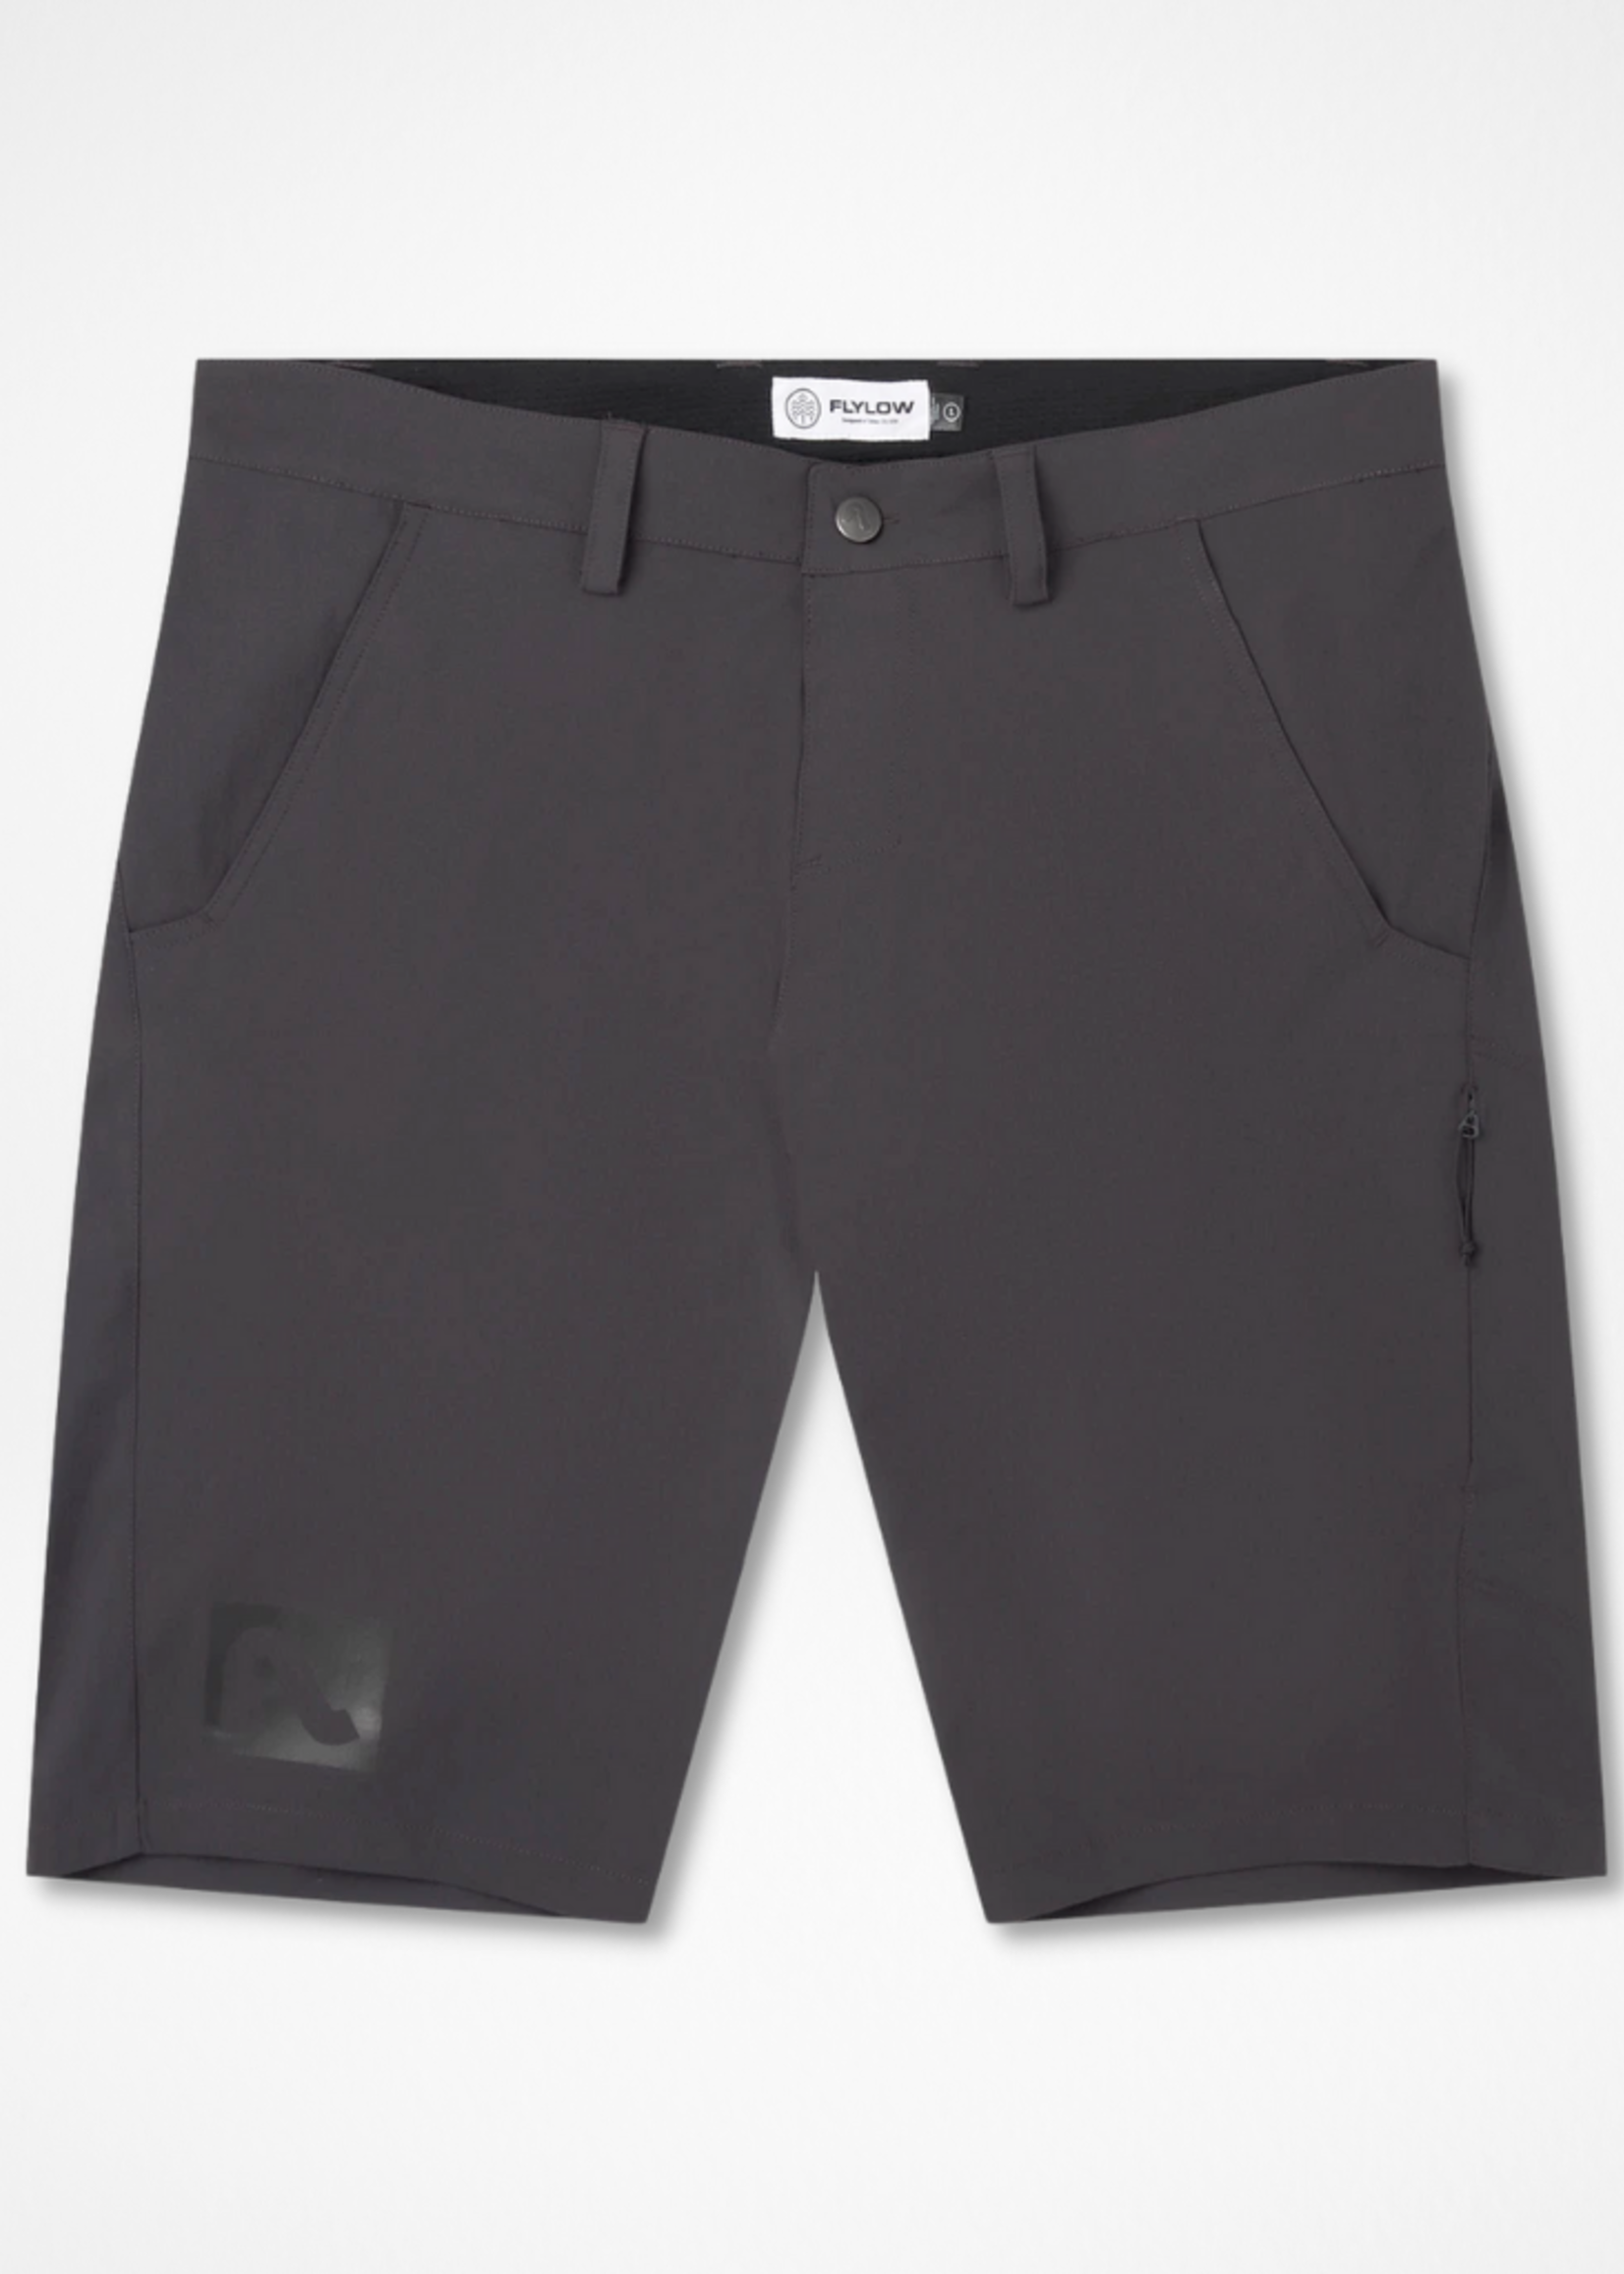 FLYLOW 21 FLYLOW PRESTON SHORT